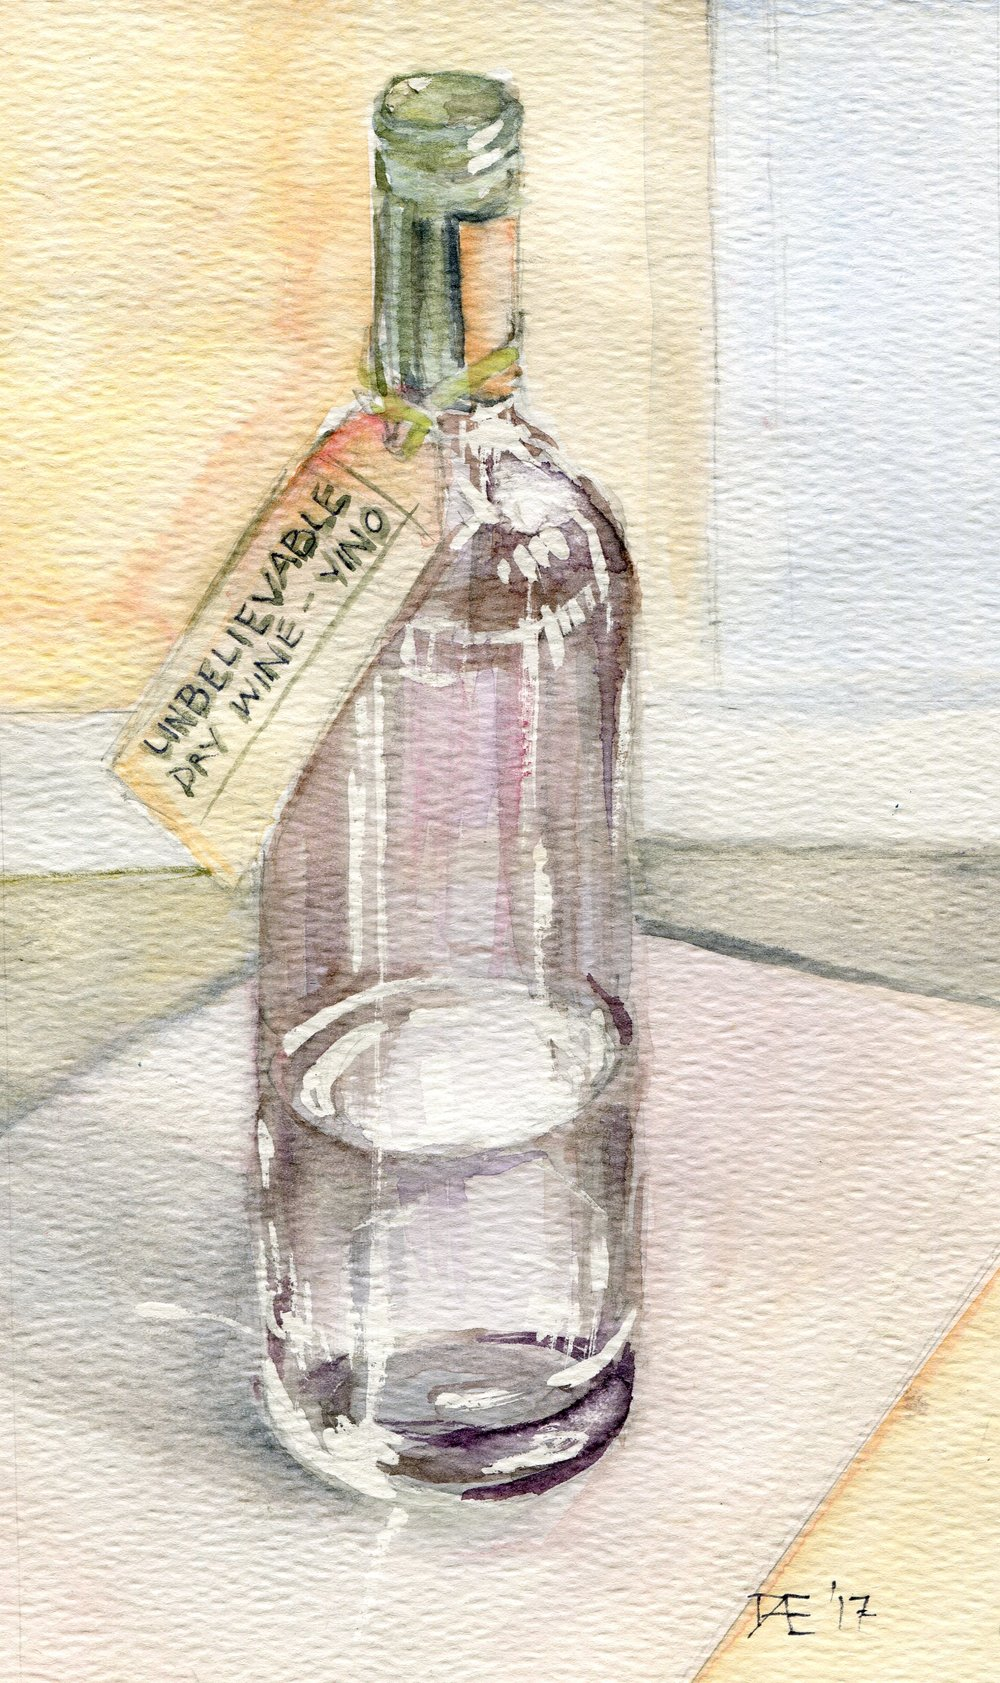 94d  Doret Ege  Vino  watercolour on paper